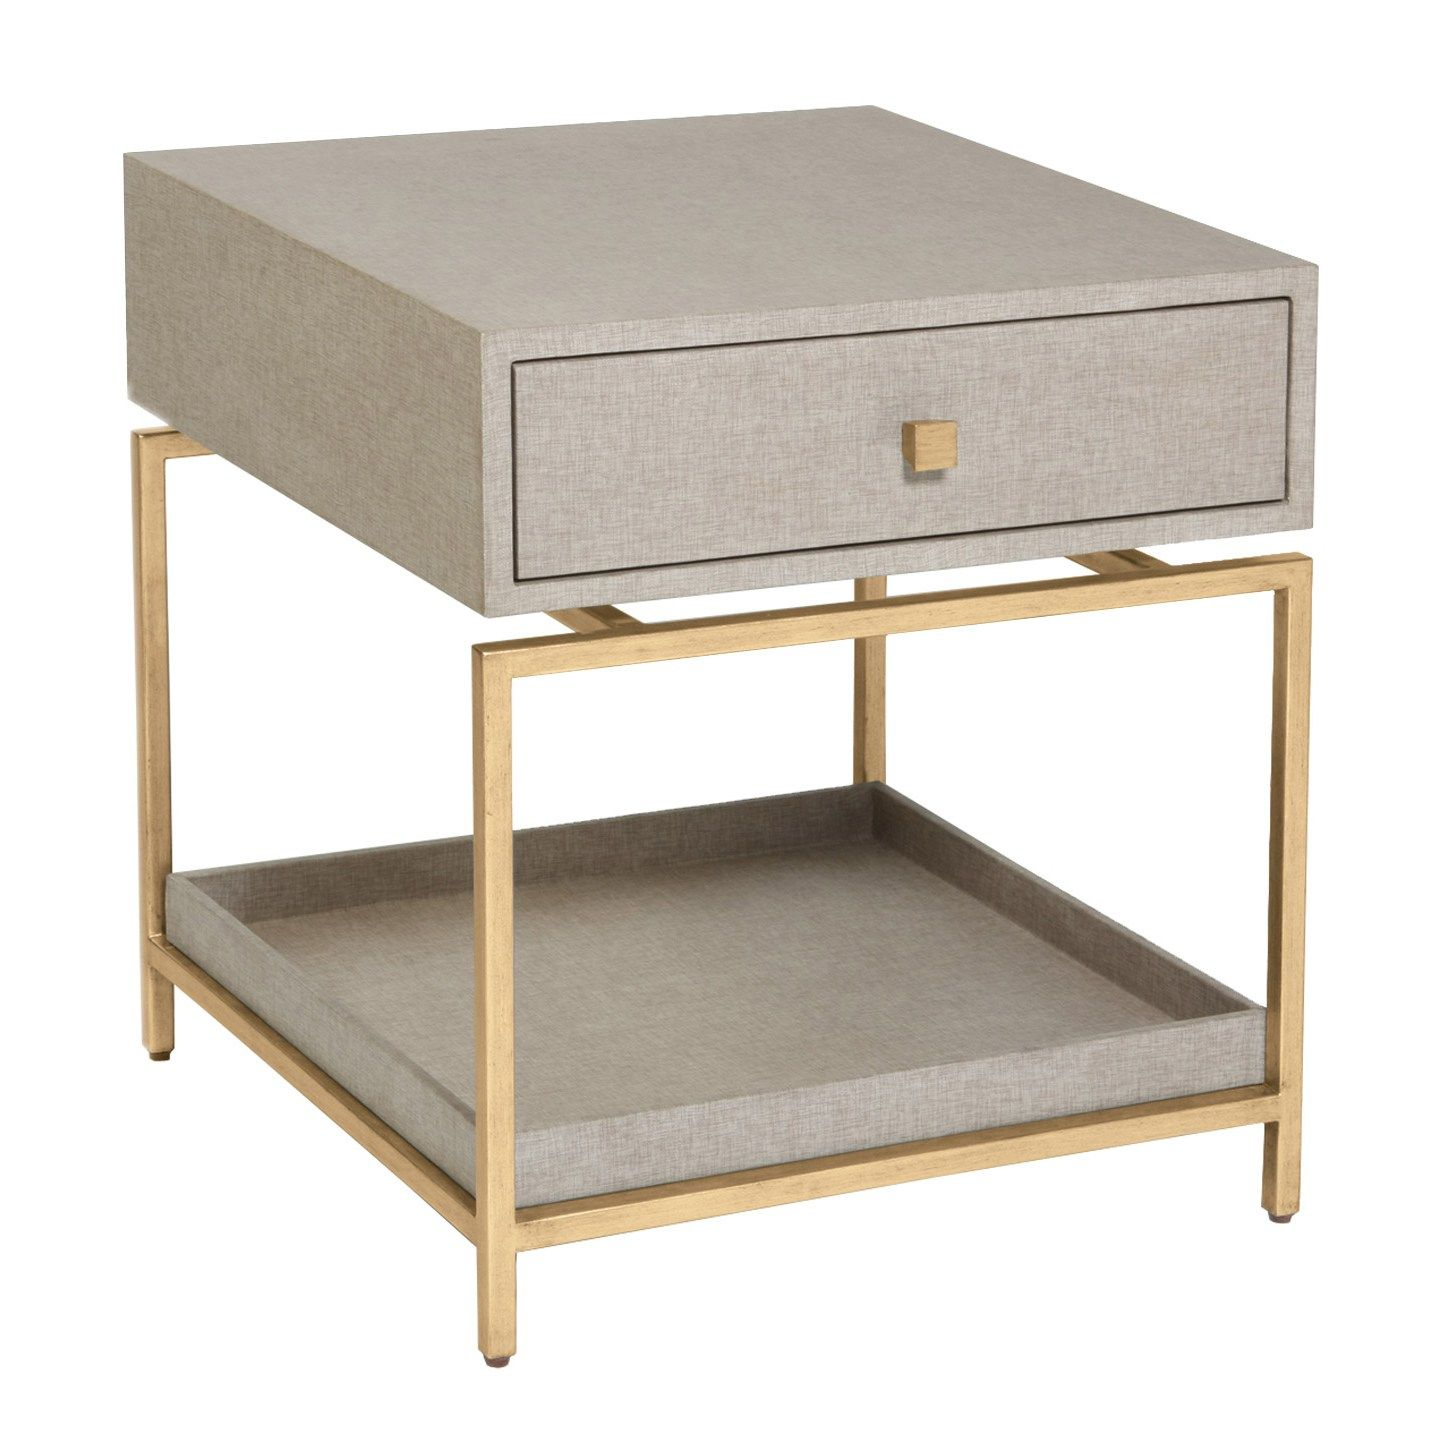 Bedside Tables Modern This Will Be My Nightstand One Night Bedside Table